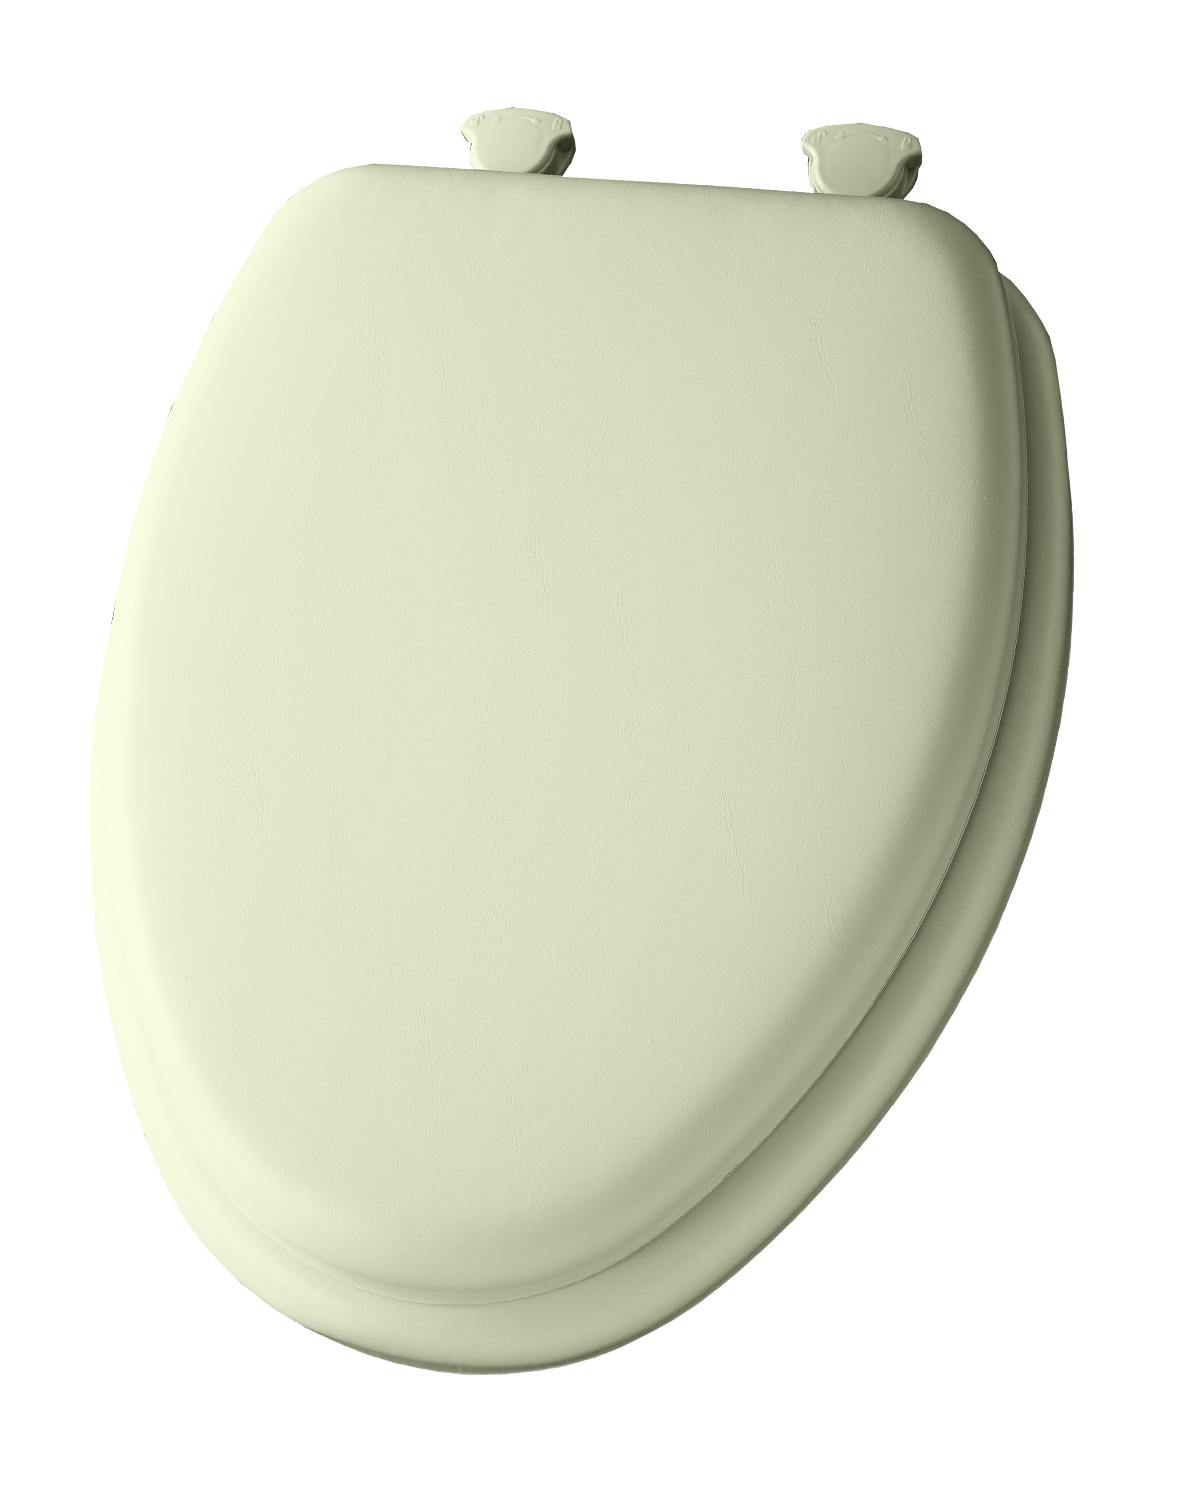 Elongated Cushioned Vinyl Soft Toilet Seat with Easy Clean & Change Hinge Bone